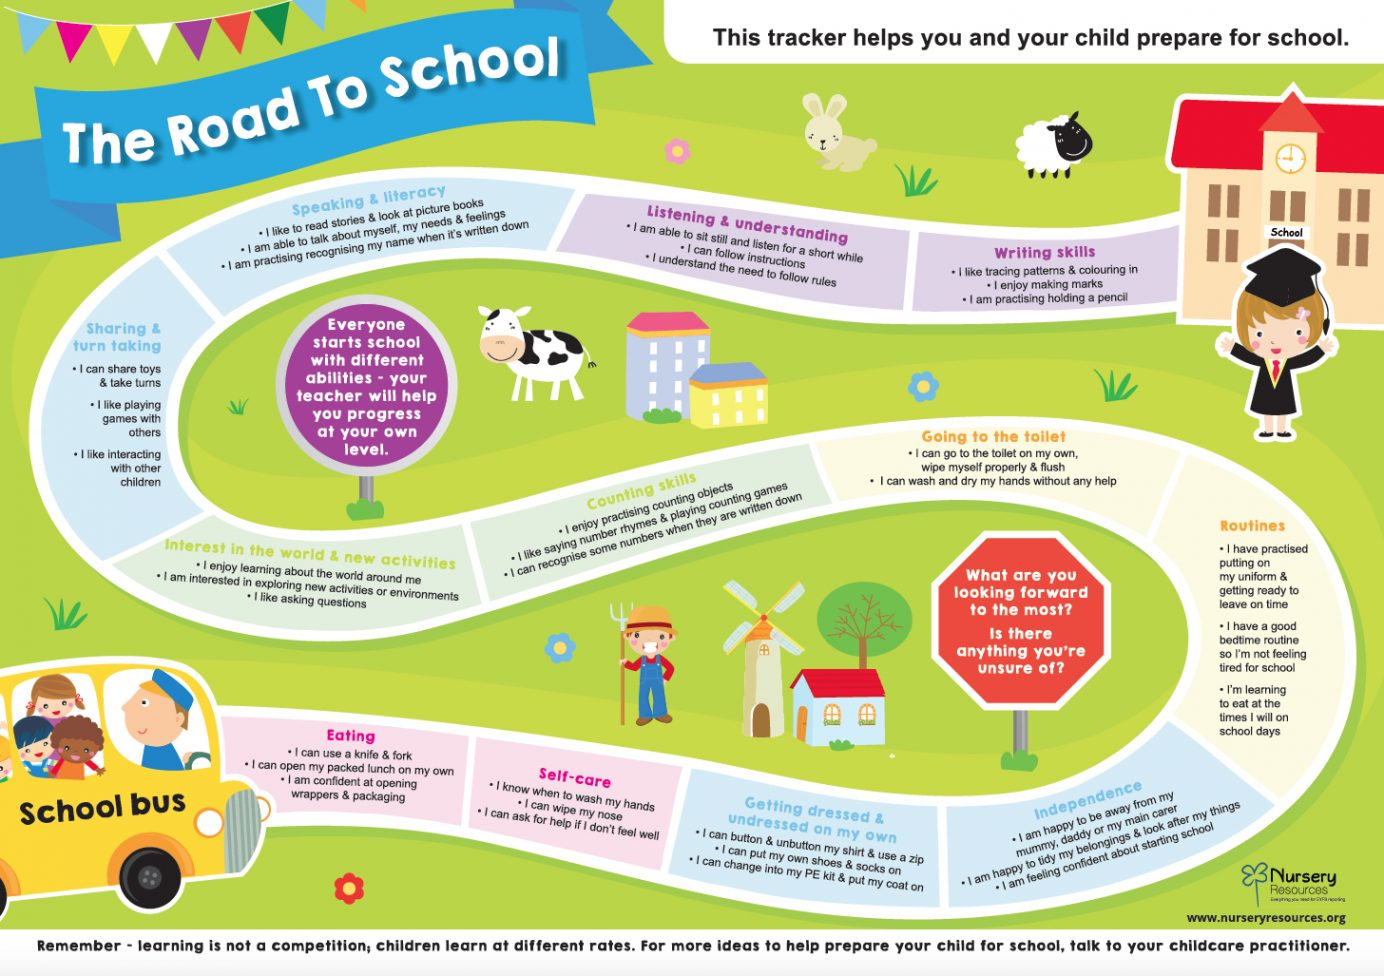 The Road to School - Natural Nurture